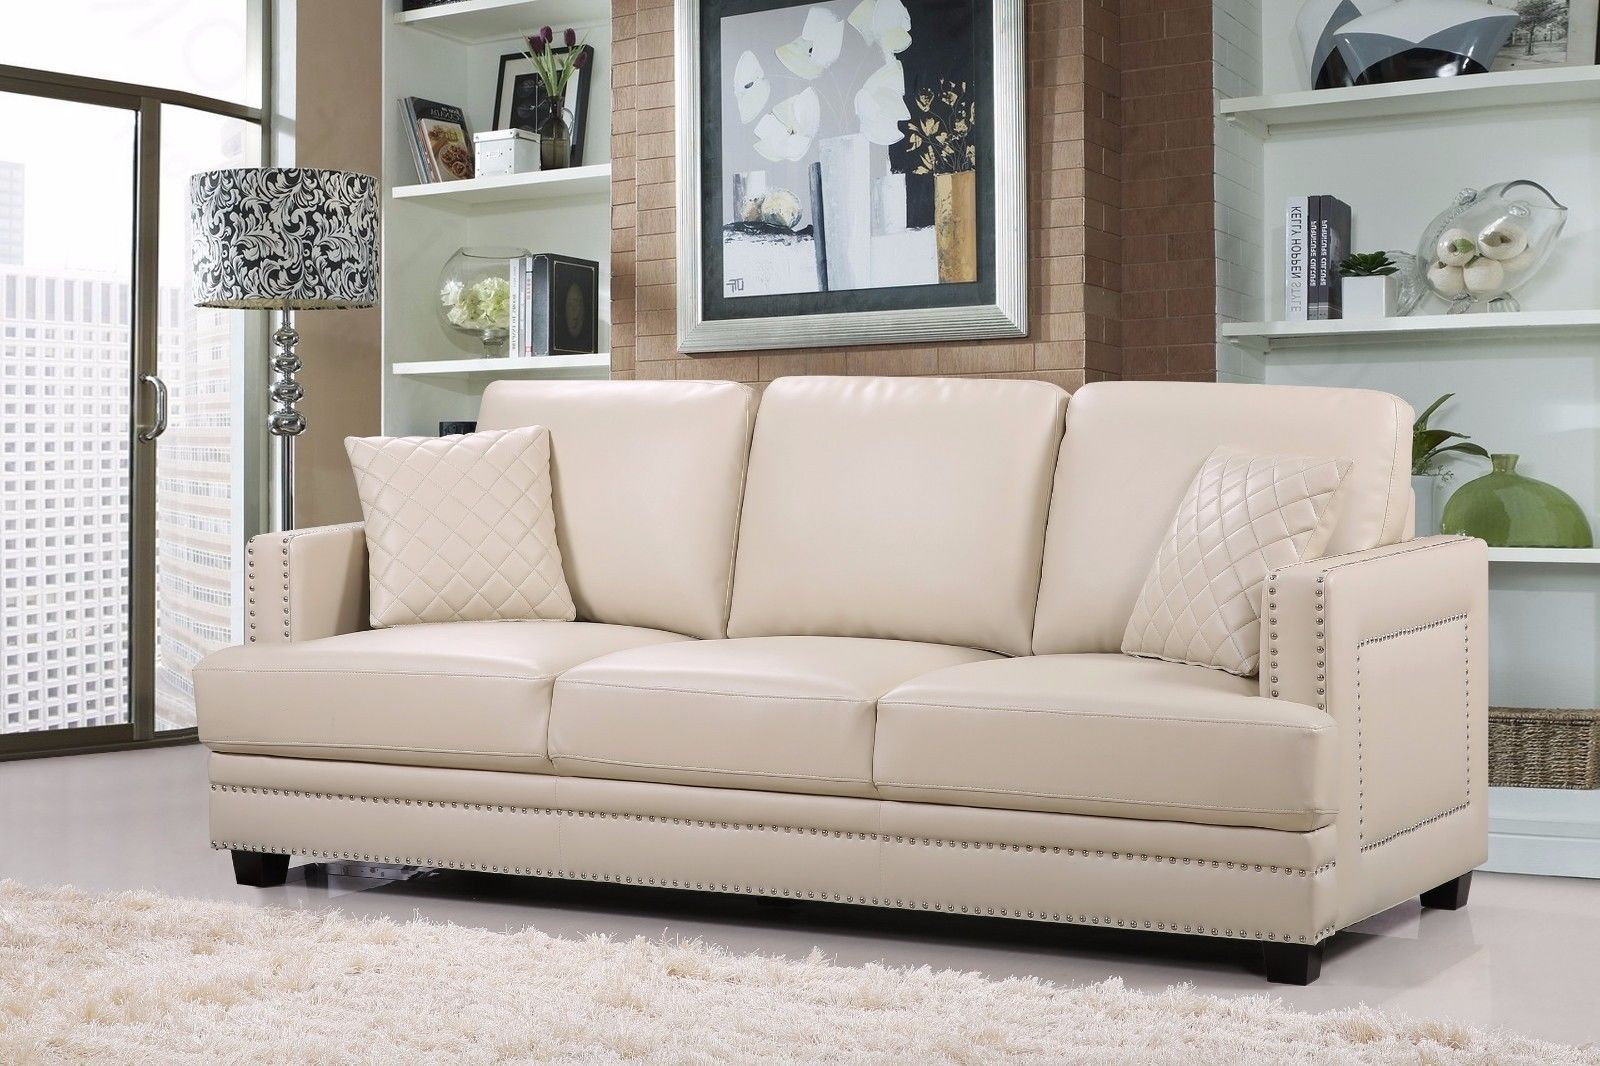 Meridian 655 Bonded Leather Living Room Sofa Set 2pc. Beige Contemporary Style